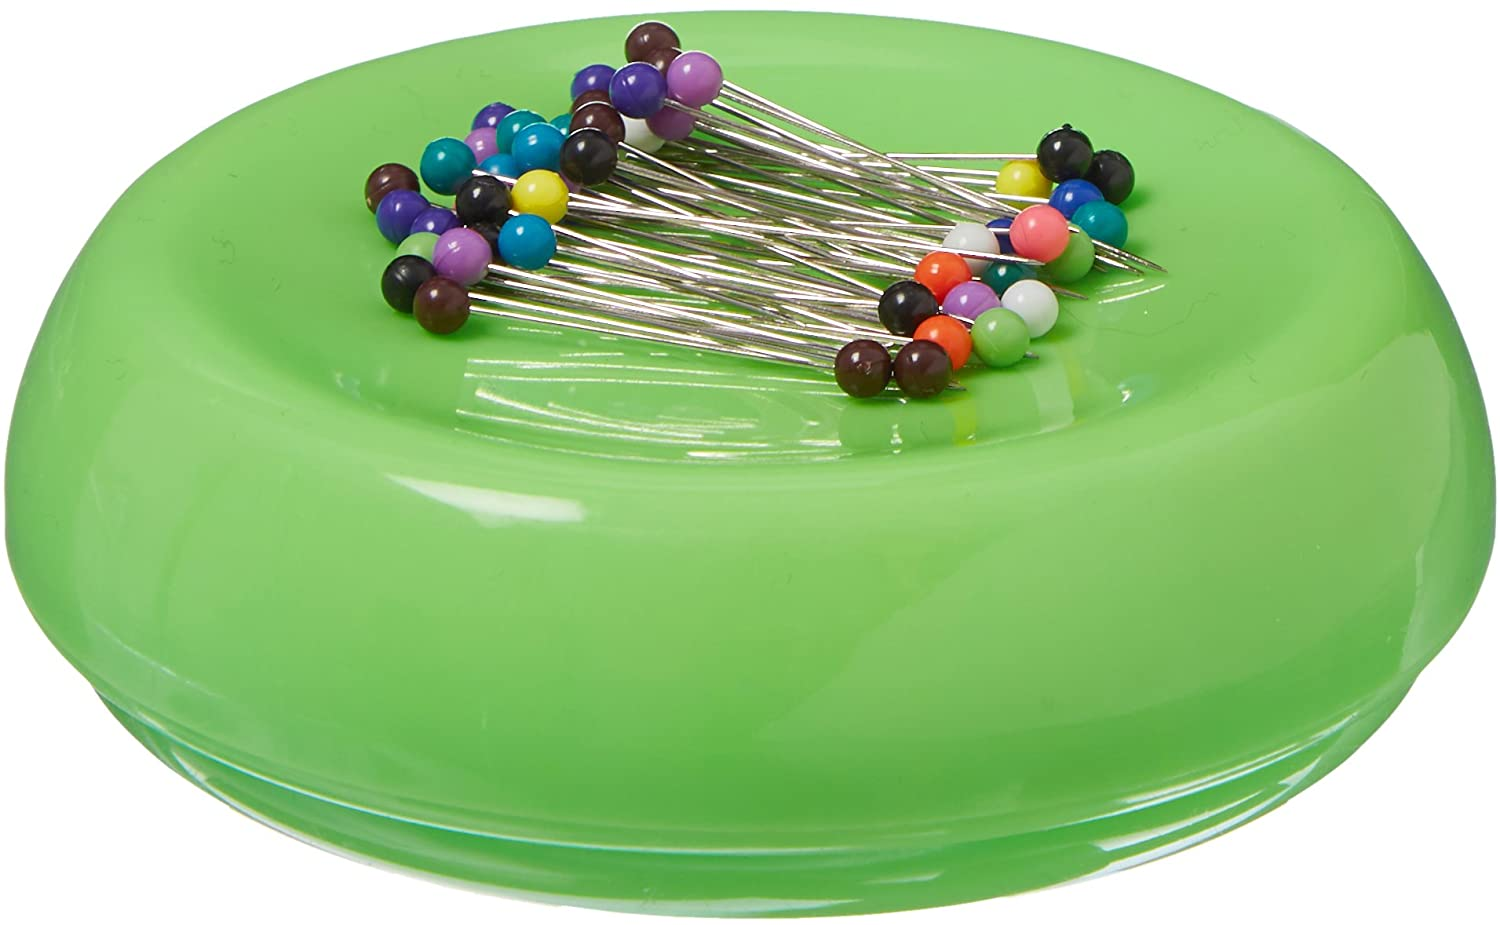 Grabbit Magnetic Sewing Pincushion with 50 Plastic Head Pins, Lime Green